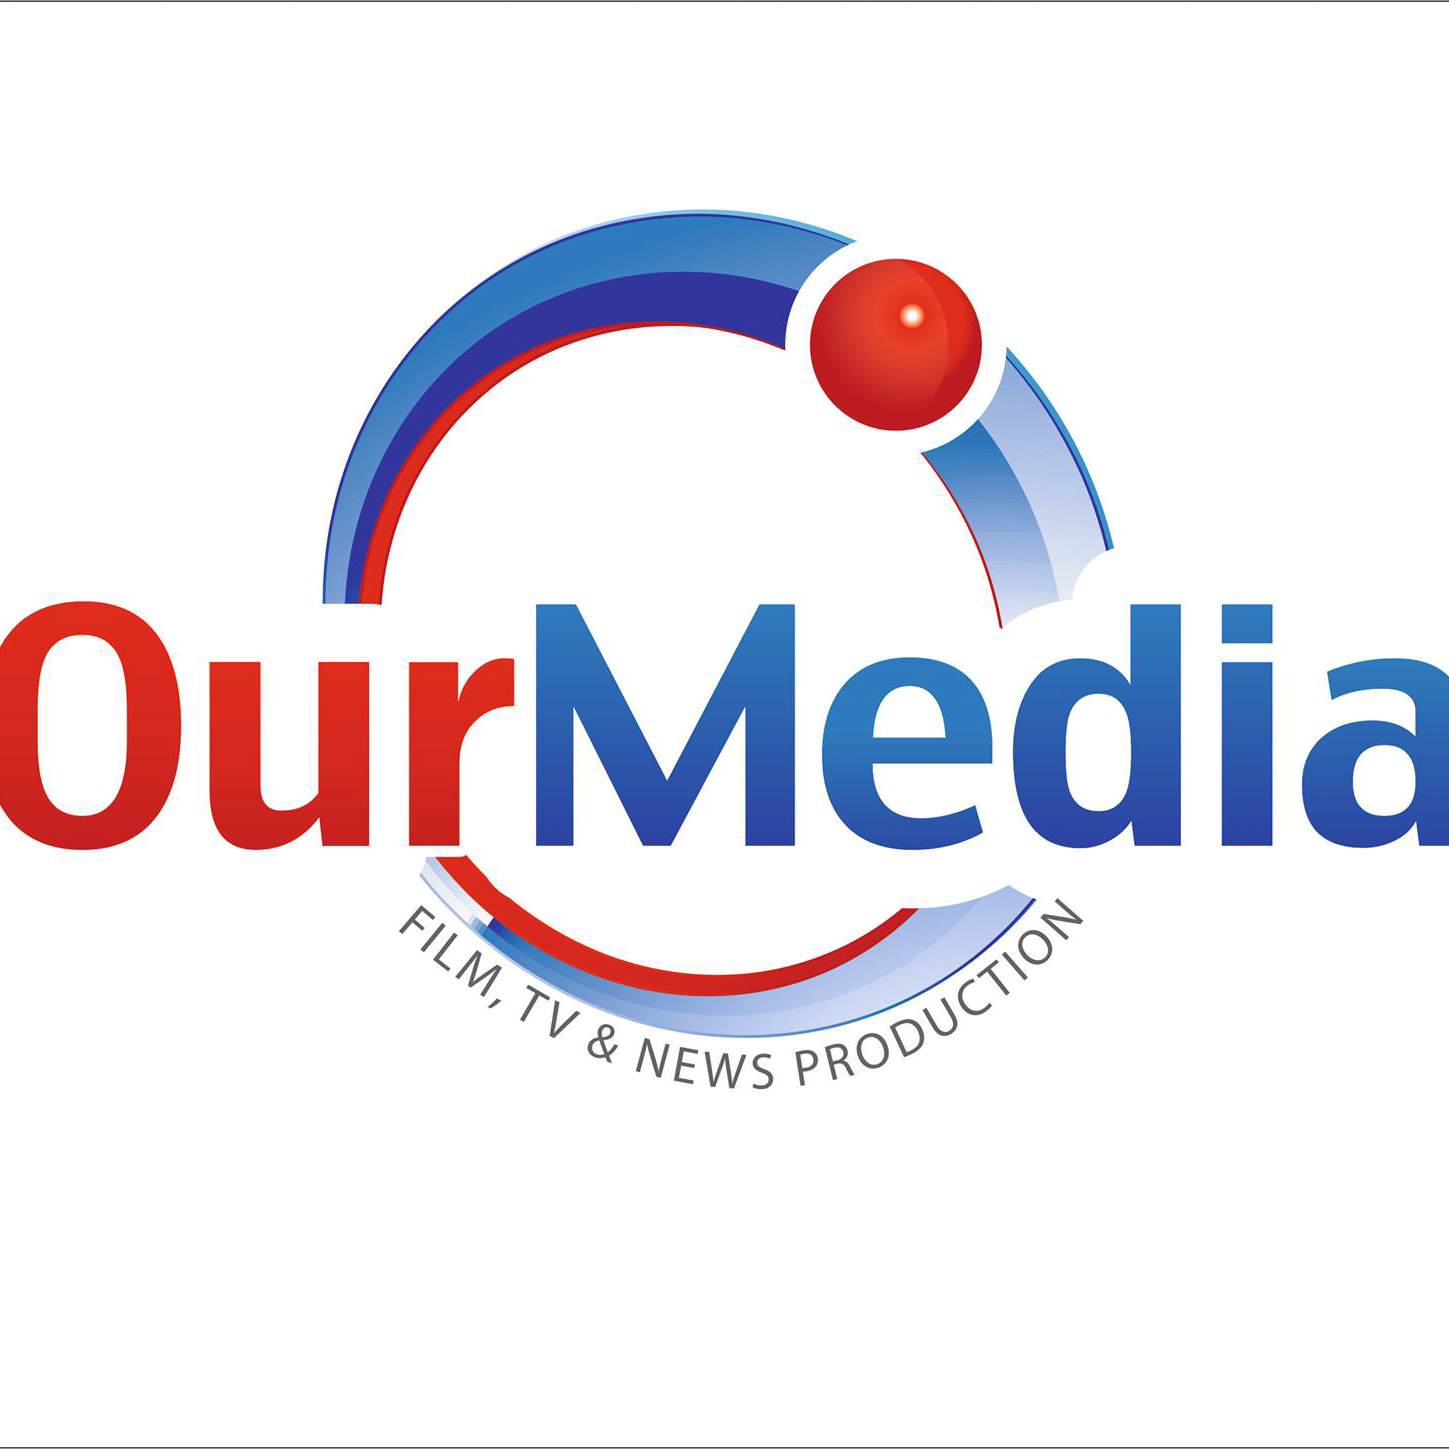 Our Media Group